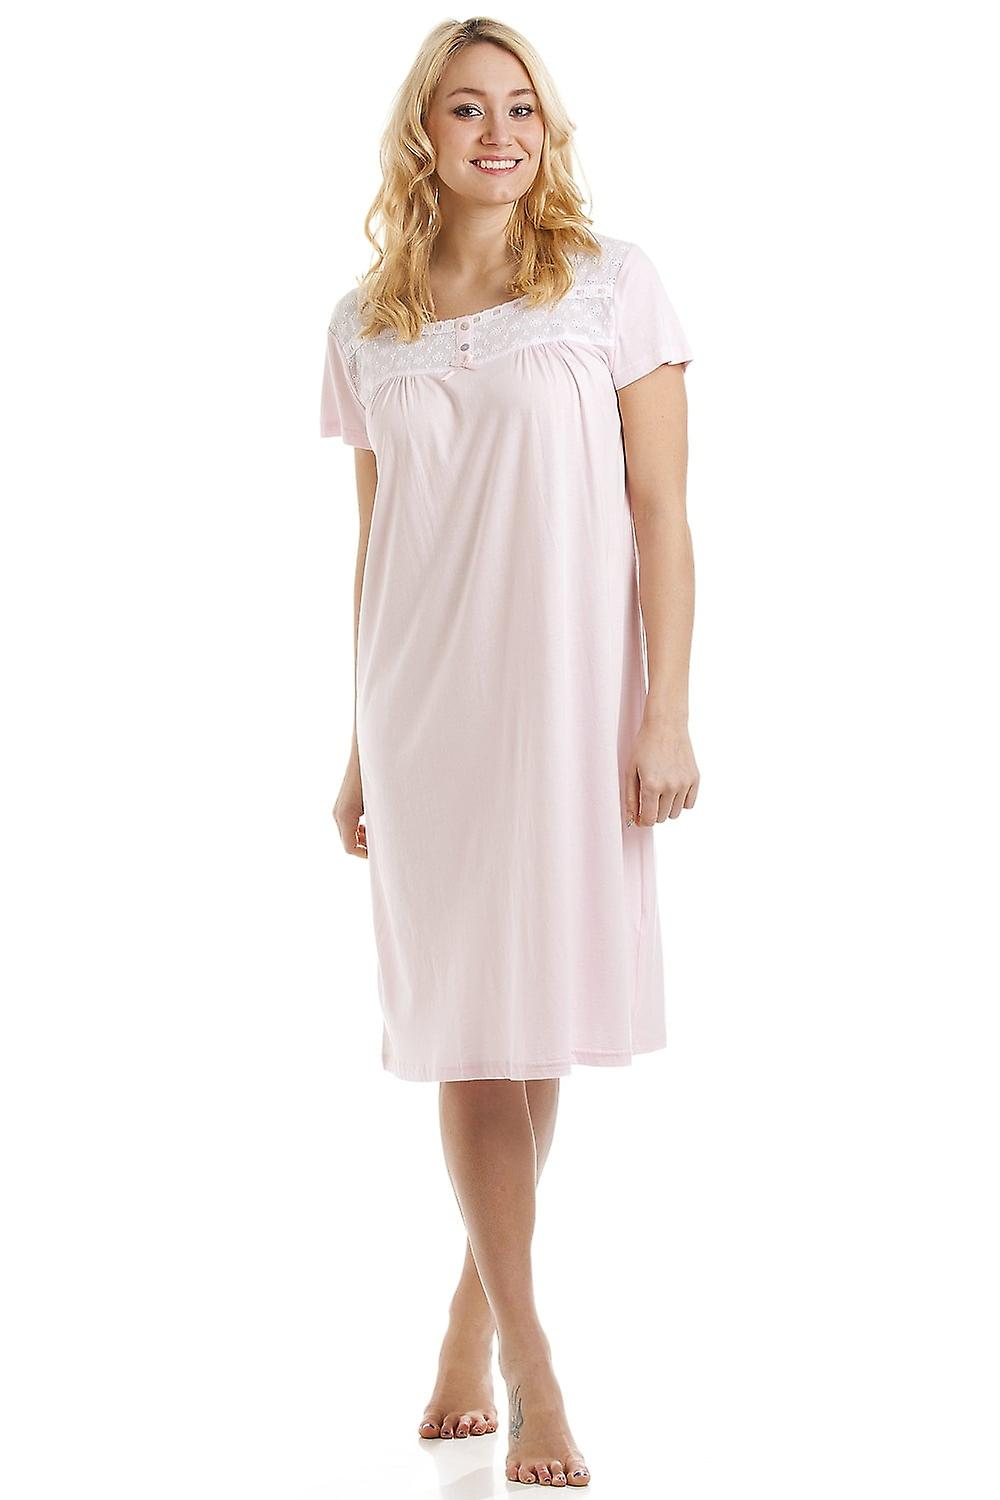 Camille Womens Luxury Pink Short Sleeve Cotton Modal Nightdress